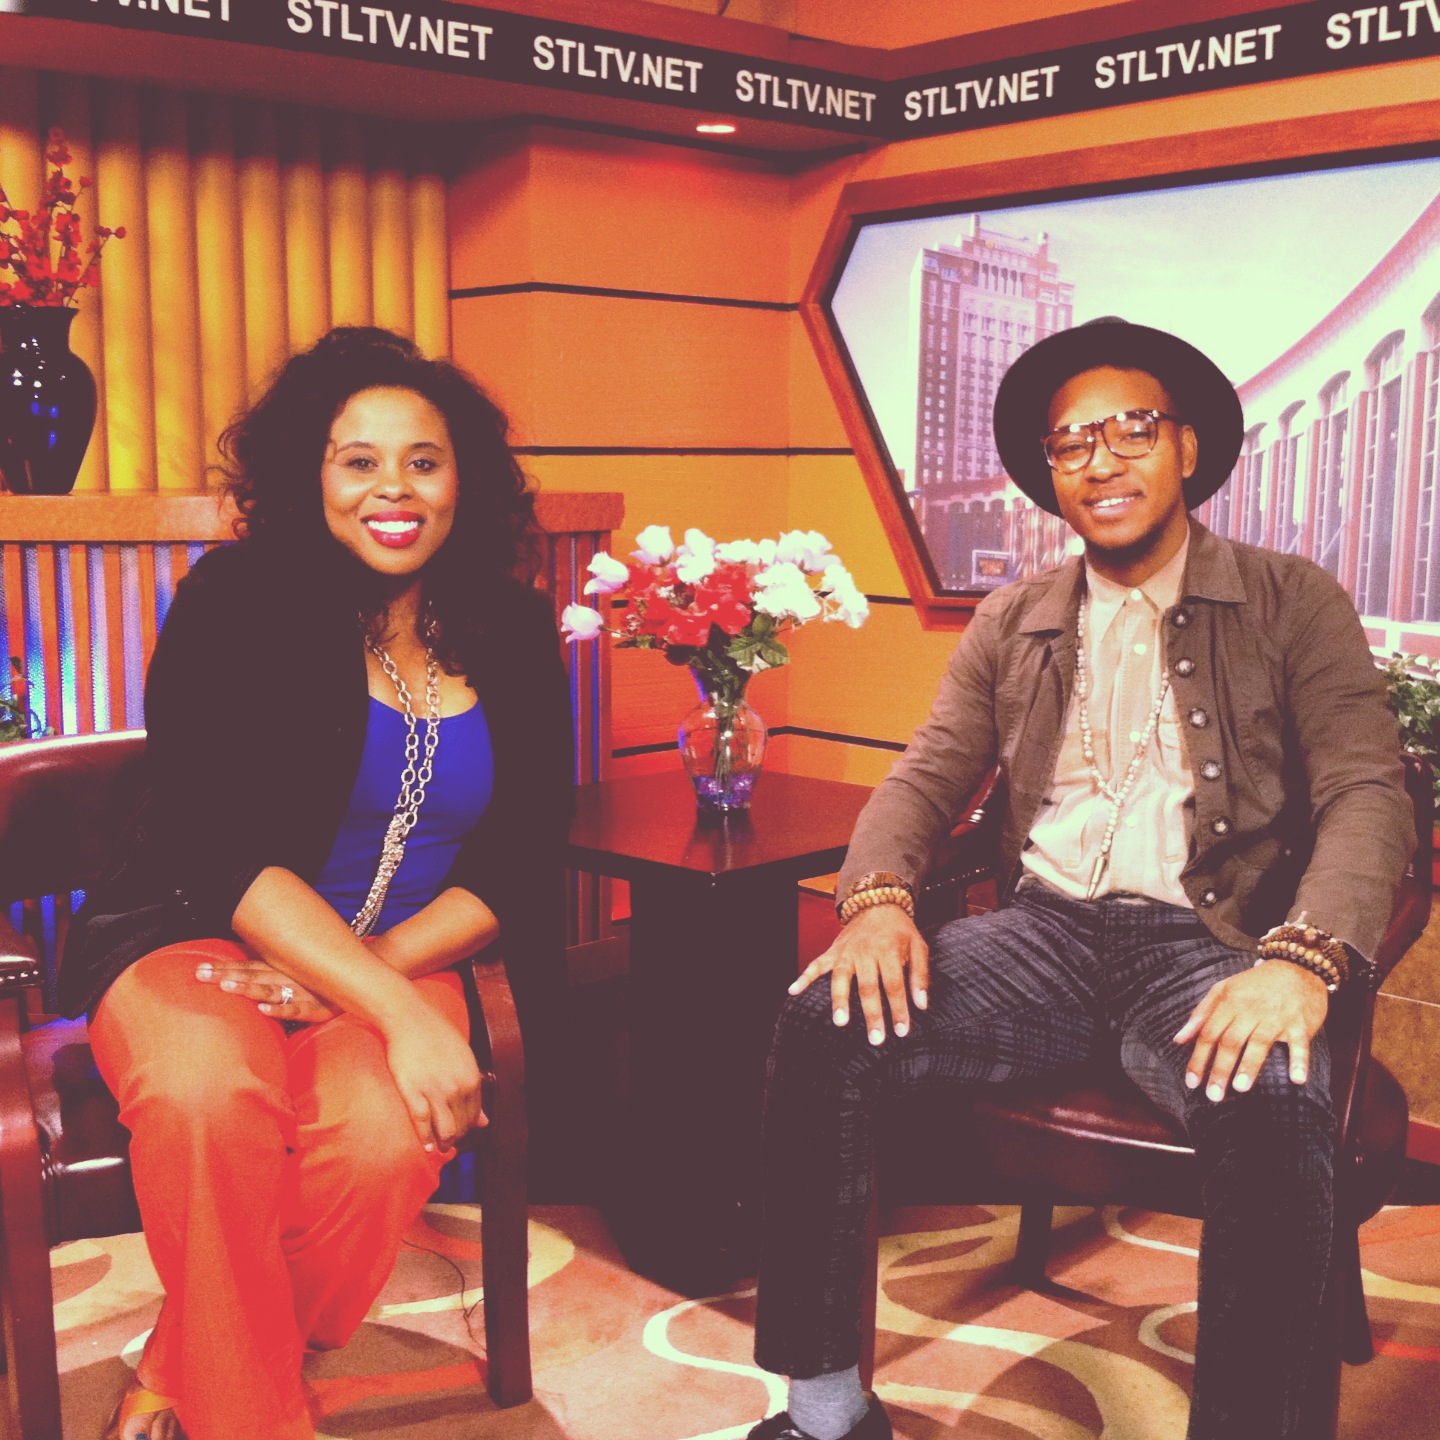 #PeepThis: Interview of THELONIUS KRYPTONITE w/ Christia DeShields on Stl TV Channel